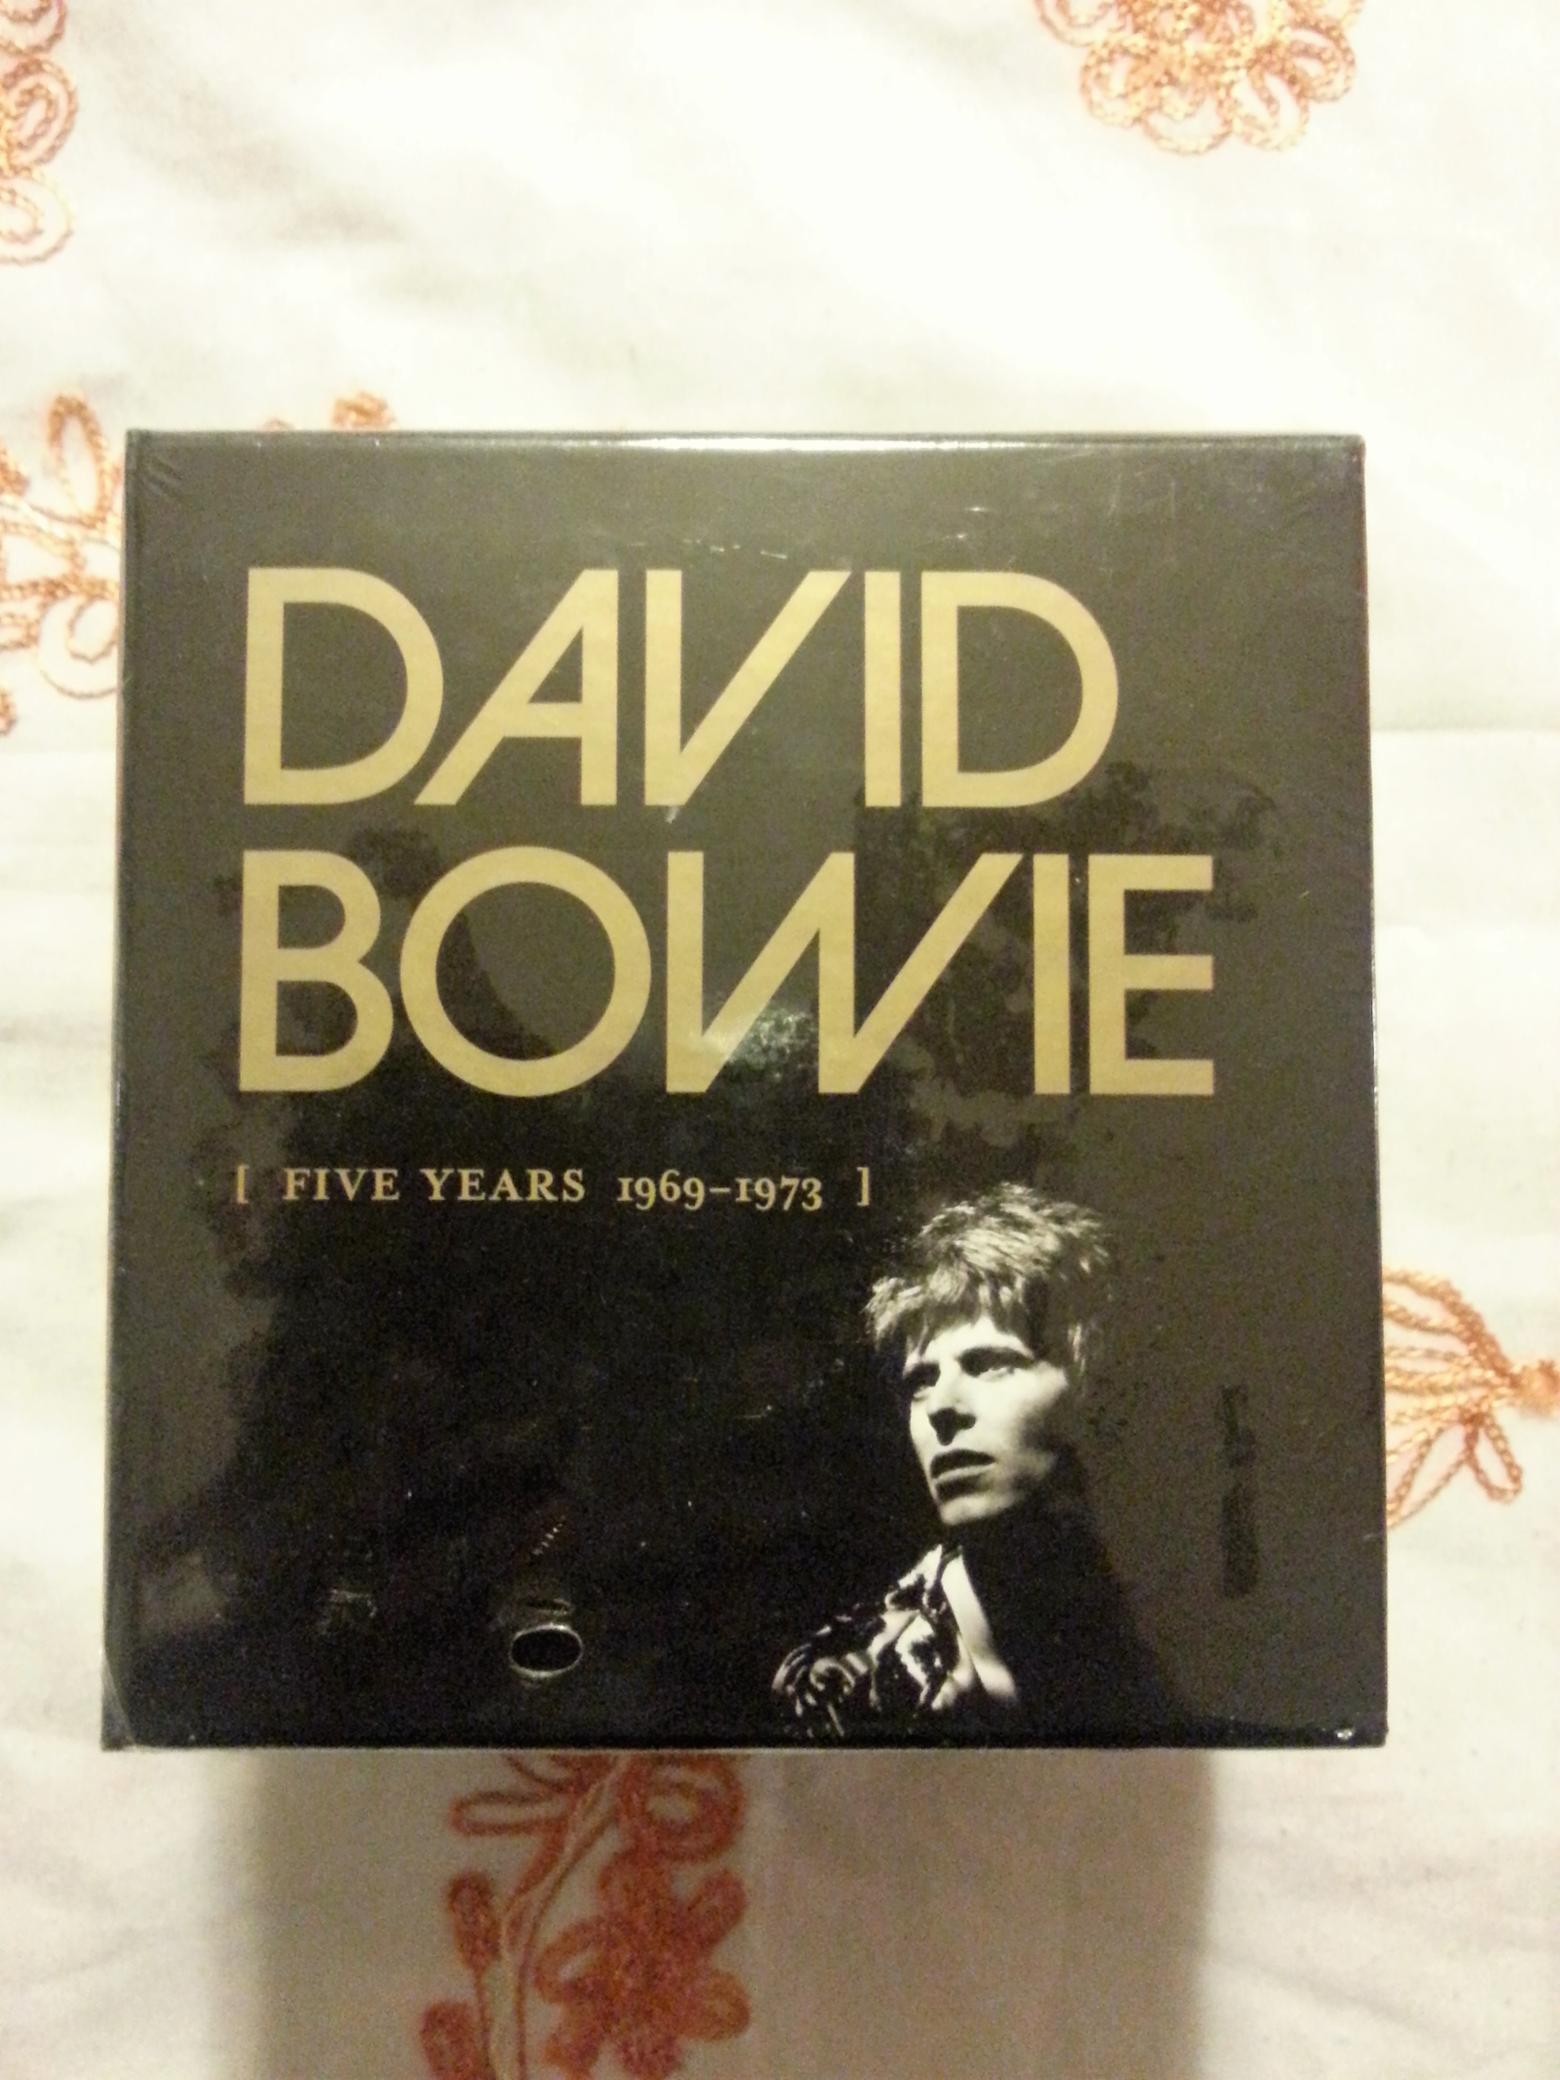 COFFRET CD DAVID BOWIE